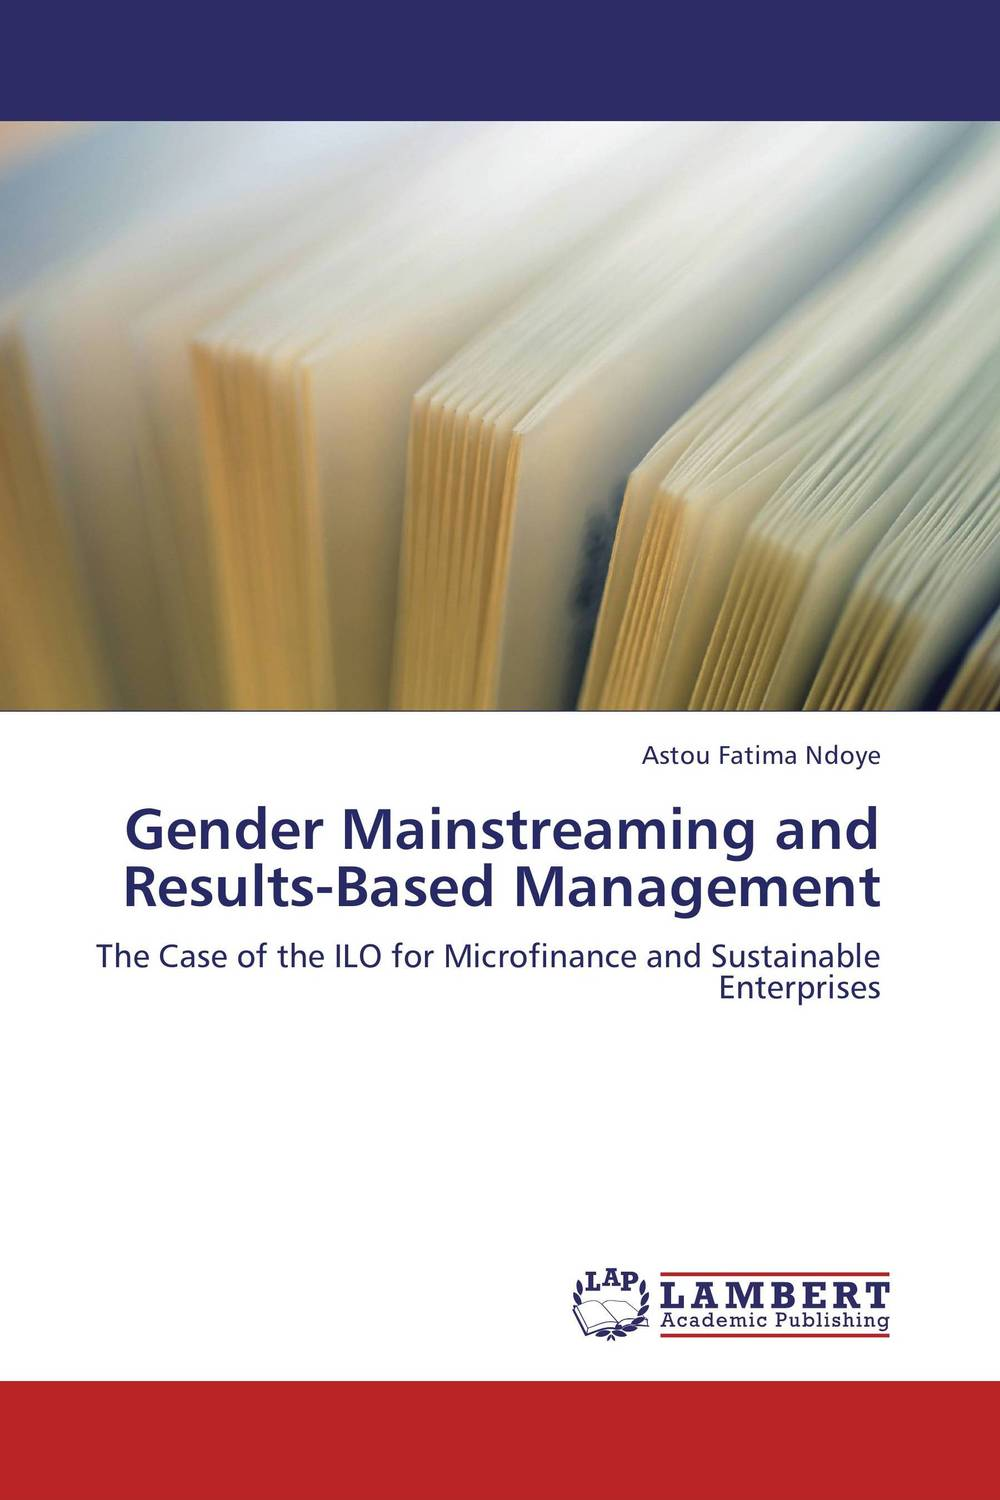 Gender Mainstreaming and Results-Based Management